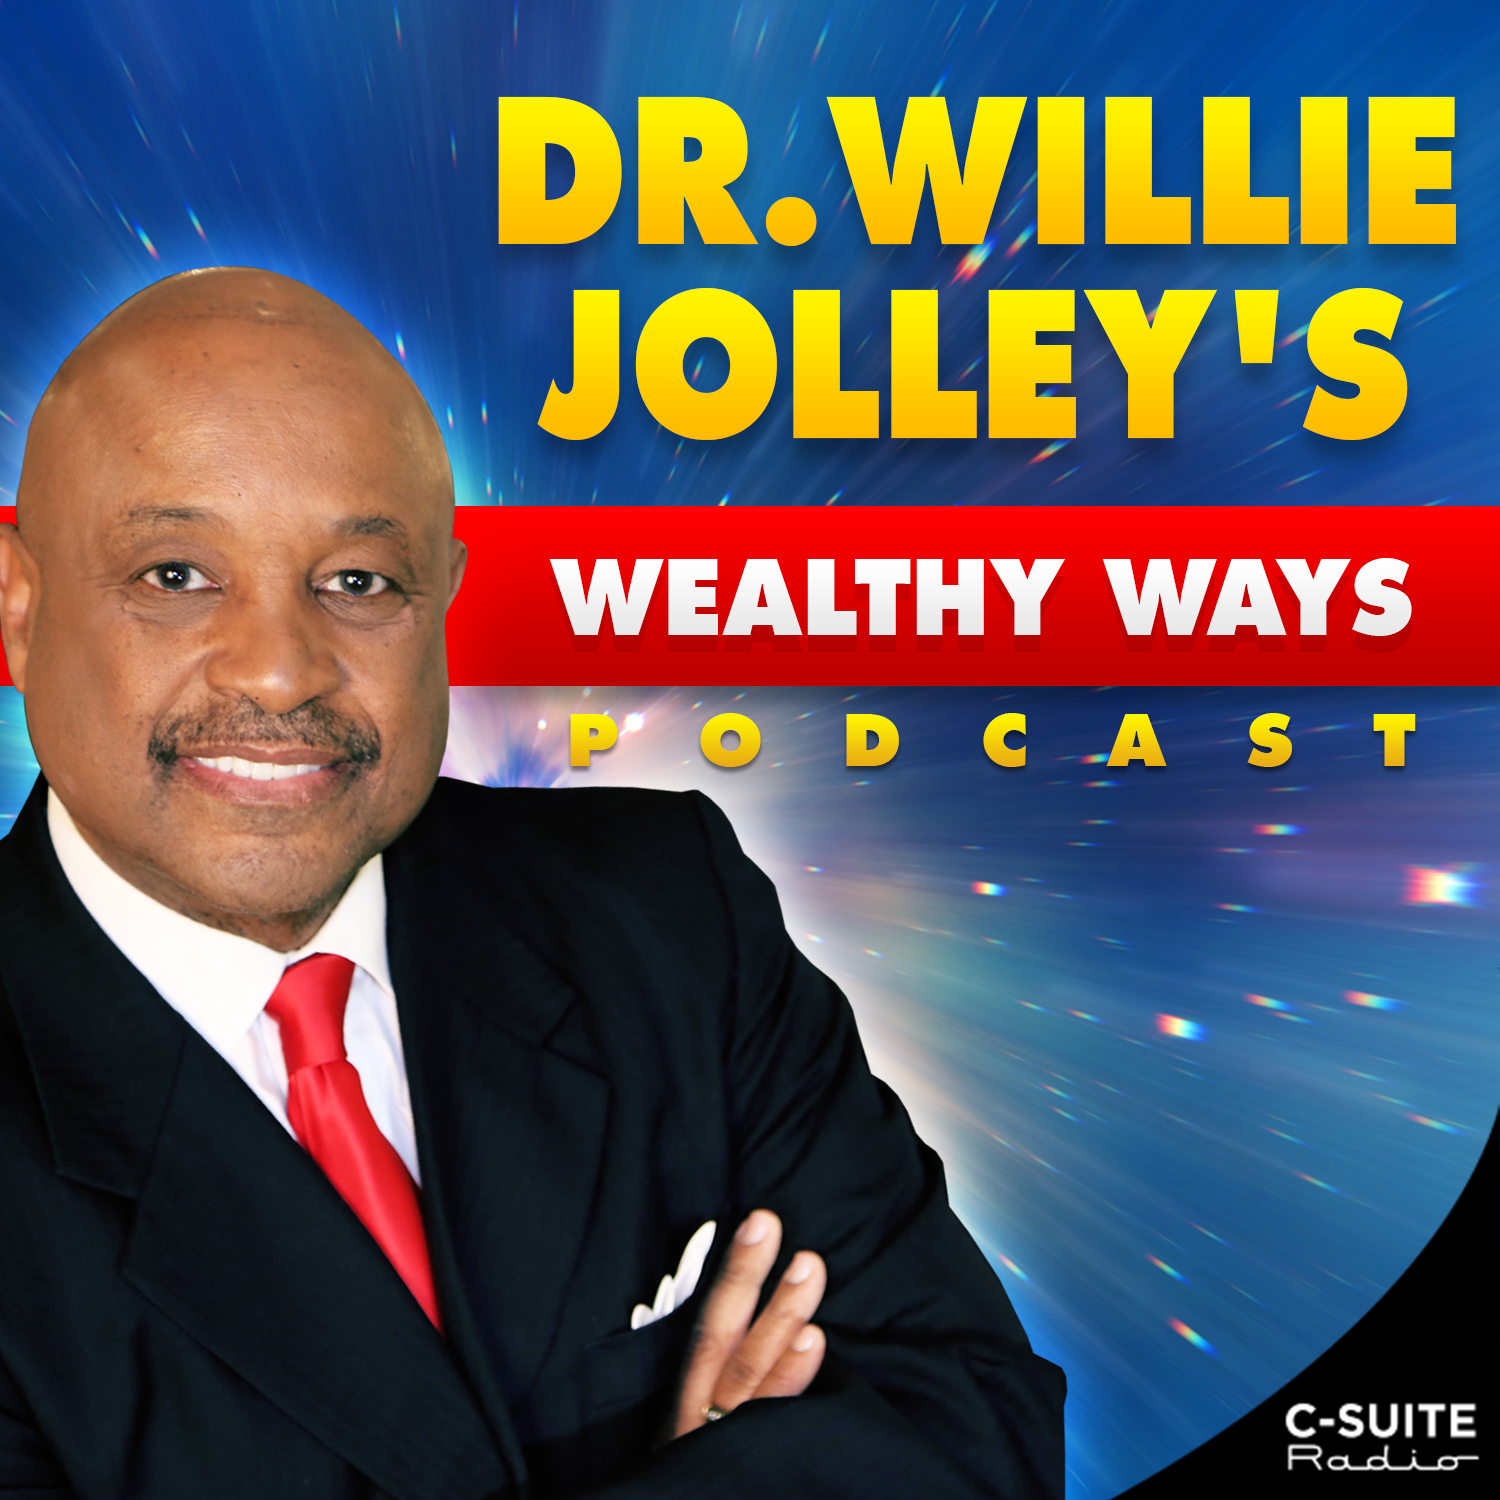 Dr. Willie Jolley's Wealthy Ways